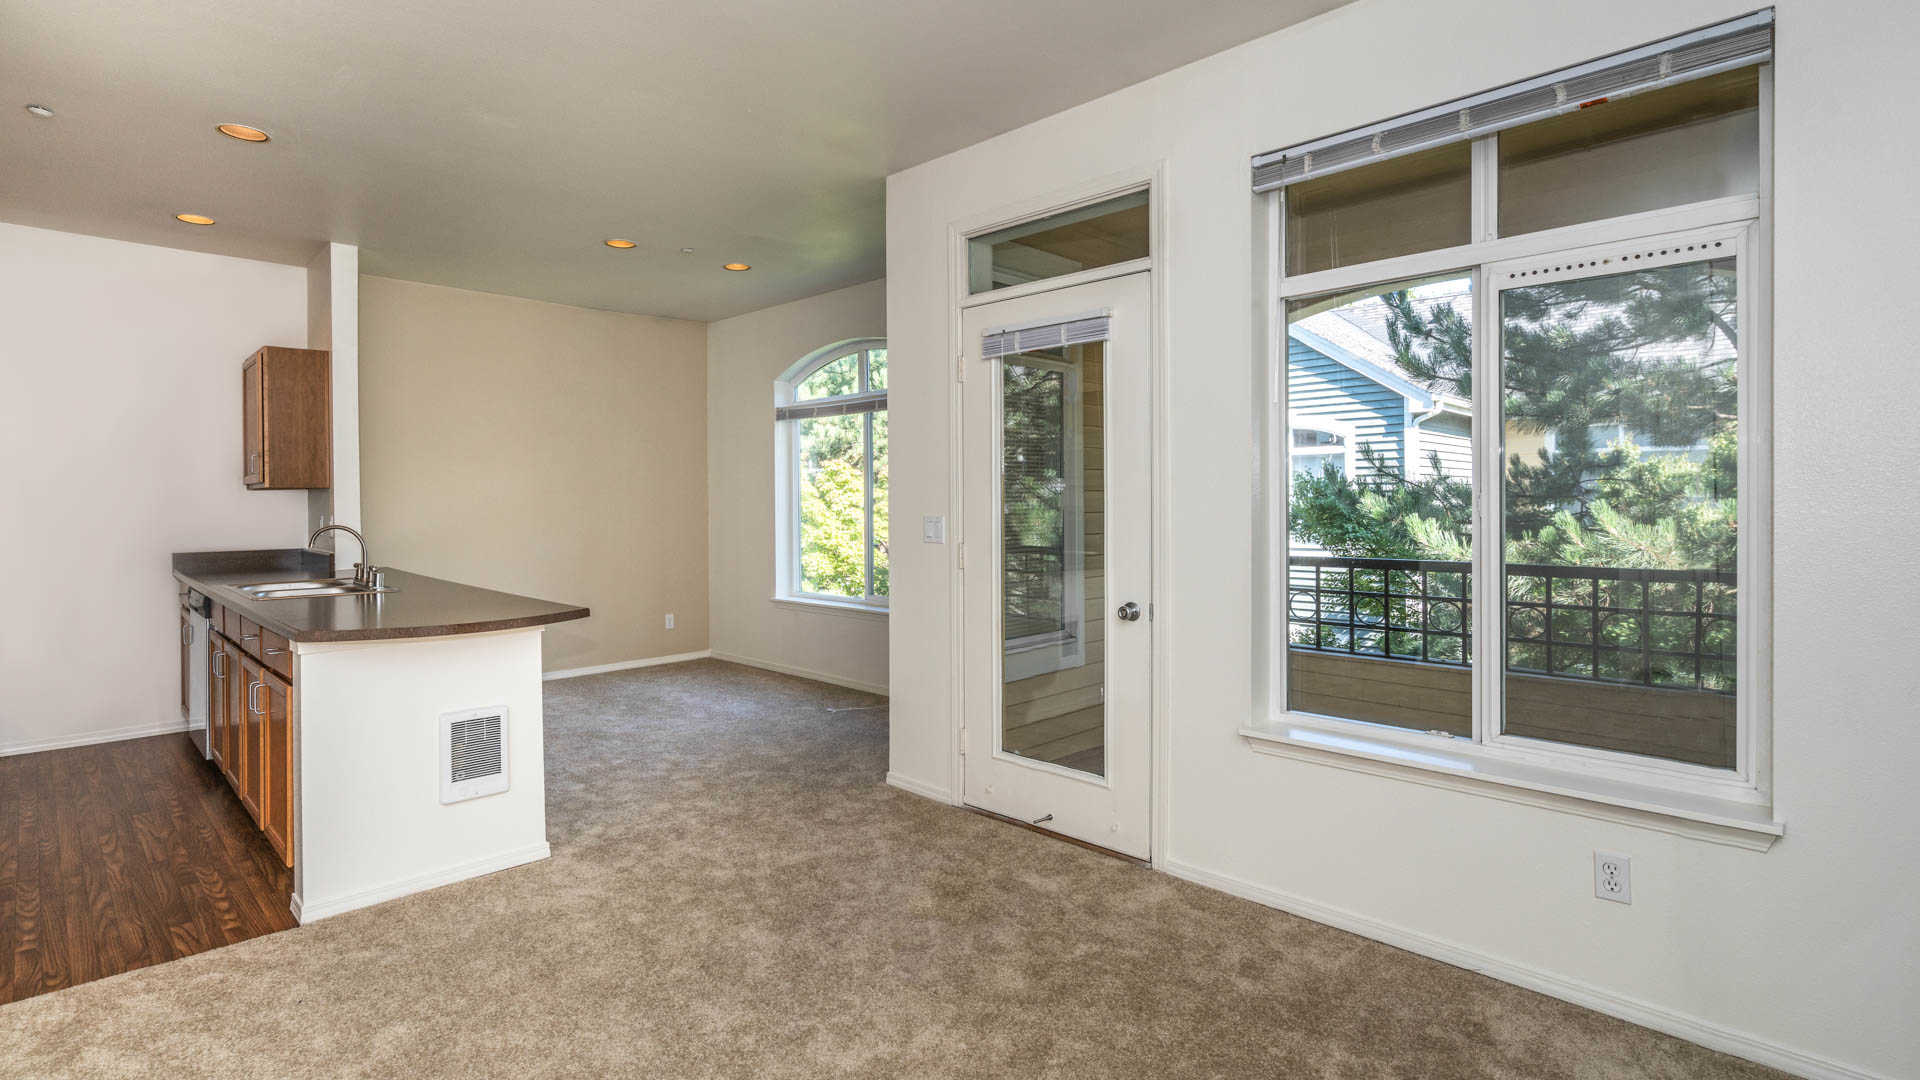 Marvelous Chelsea Square Apartments In Downtown Redmond   16340 N.E. 83rd Street |  EquityApartments.com